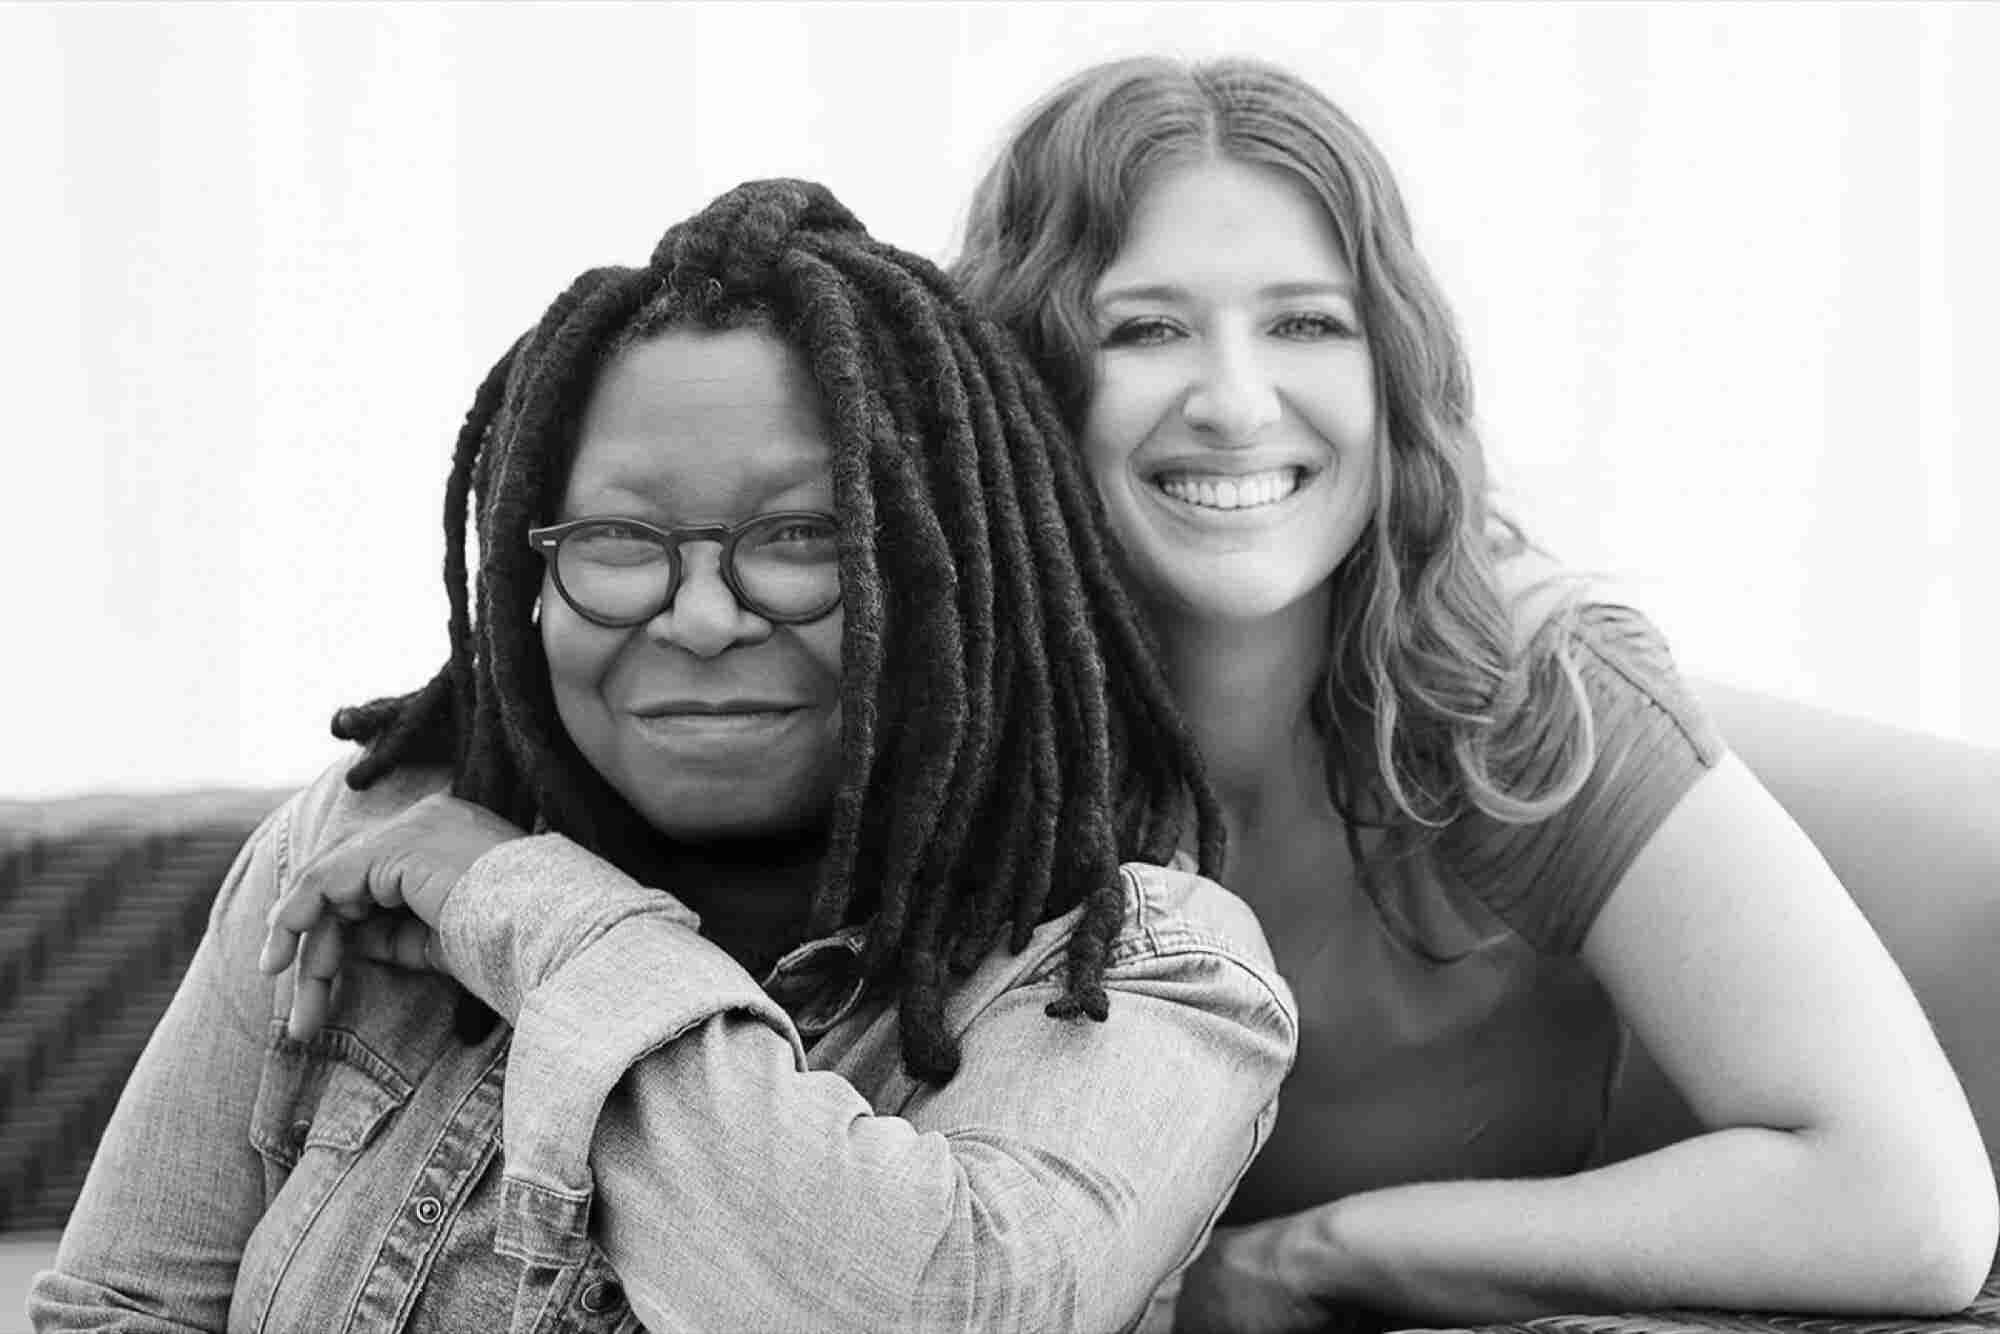 Whoopi Goldberg Launches Medical Marijuana Startup to Ease Menstrual Cramp Pain